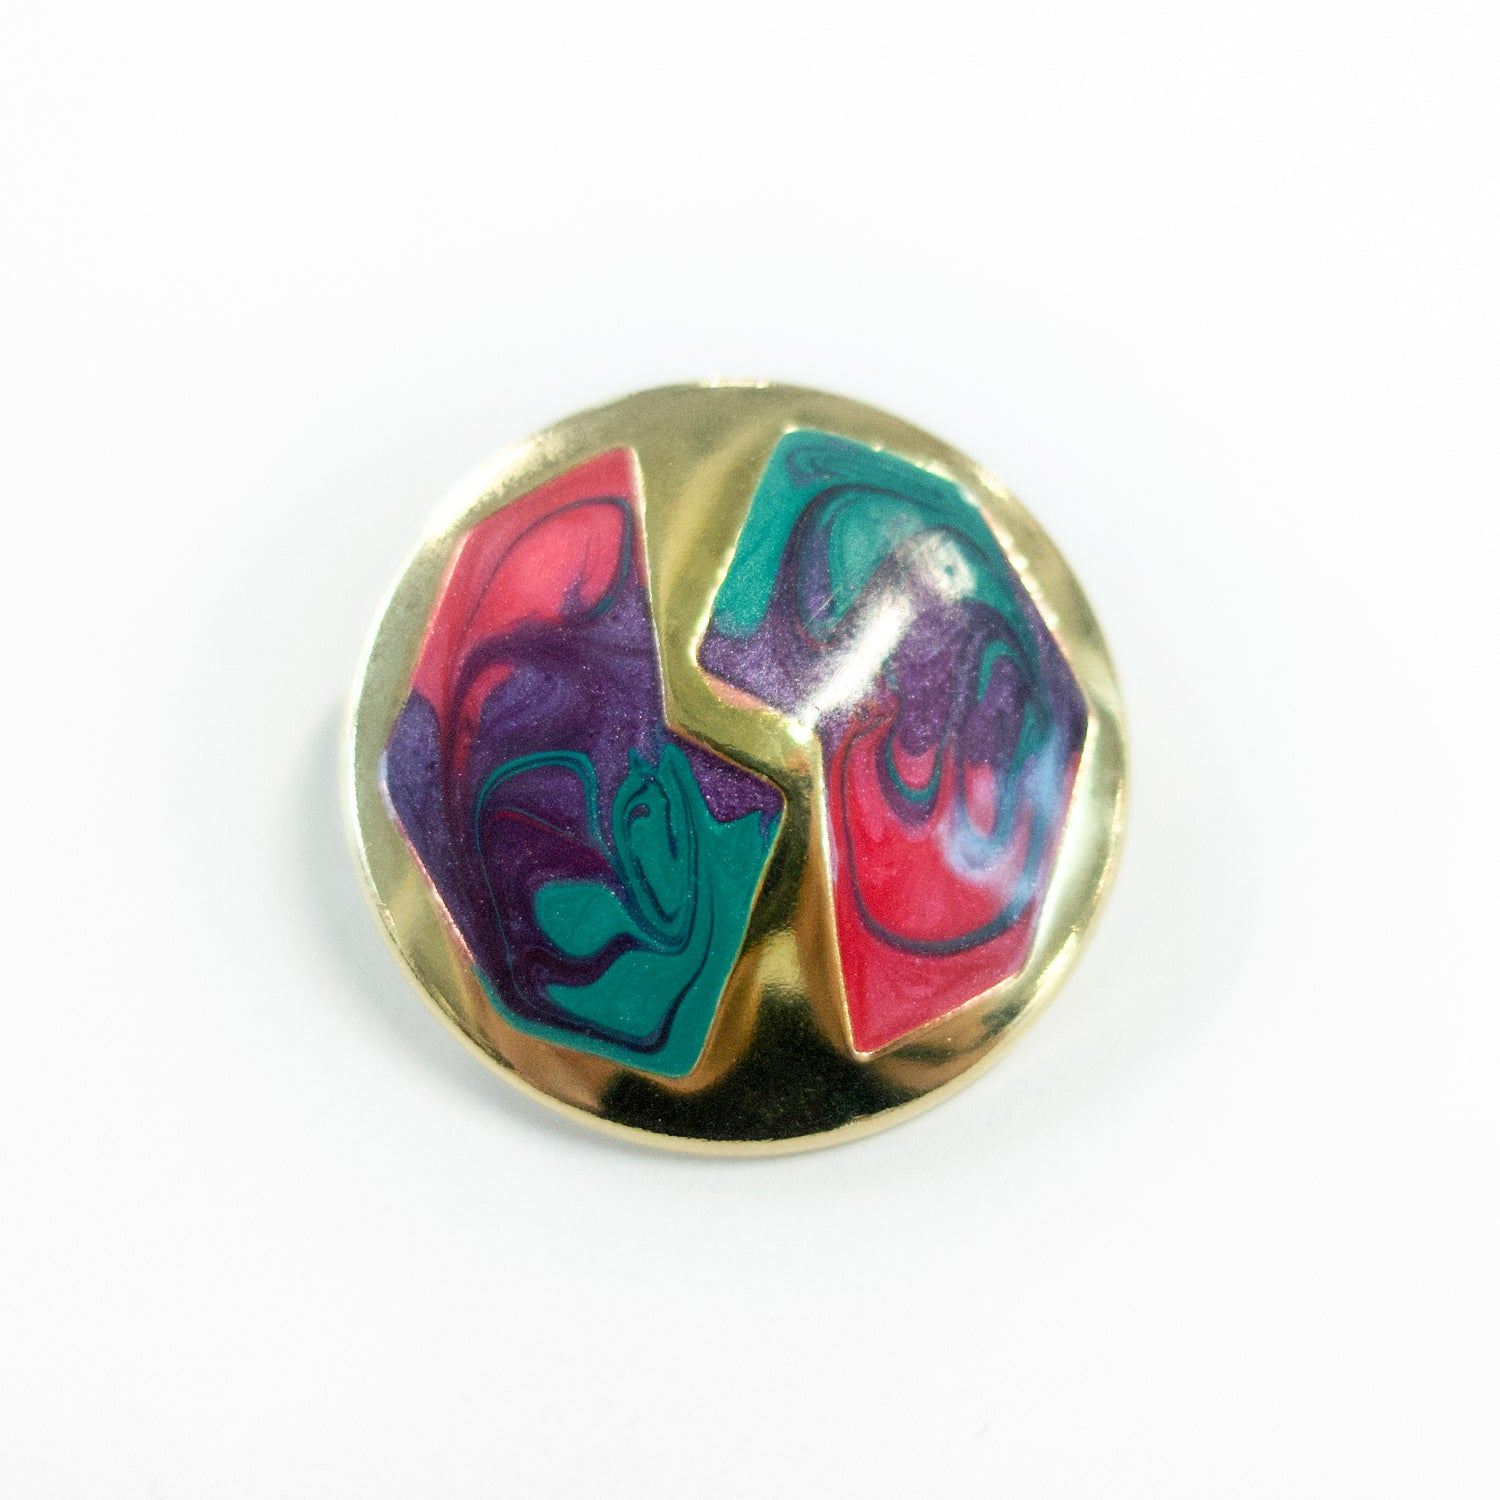 "Second Room Vintage Clothing. Vintage round, gold tone enamel stud earrings with paint swirl design in pink, purple and green. Earrings are 1.25"" across. Original earring backs have been replaced with new, clear silicone backings. Free North American shipping on all orders."